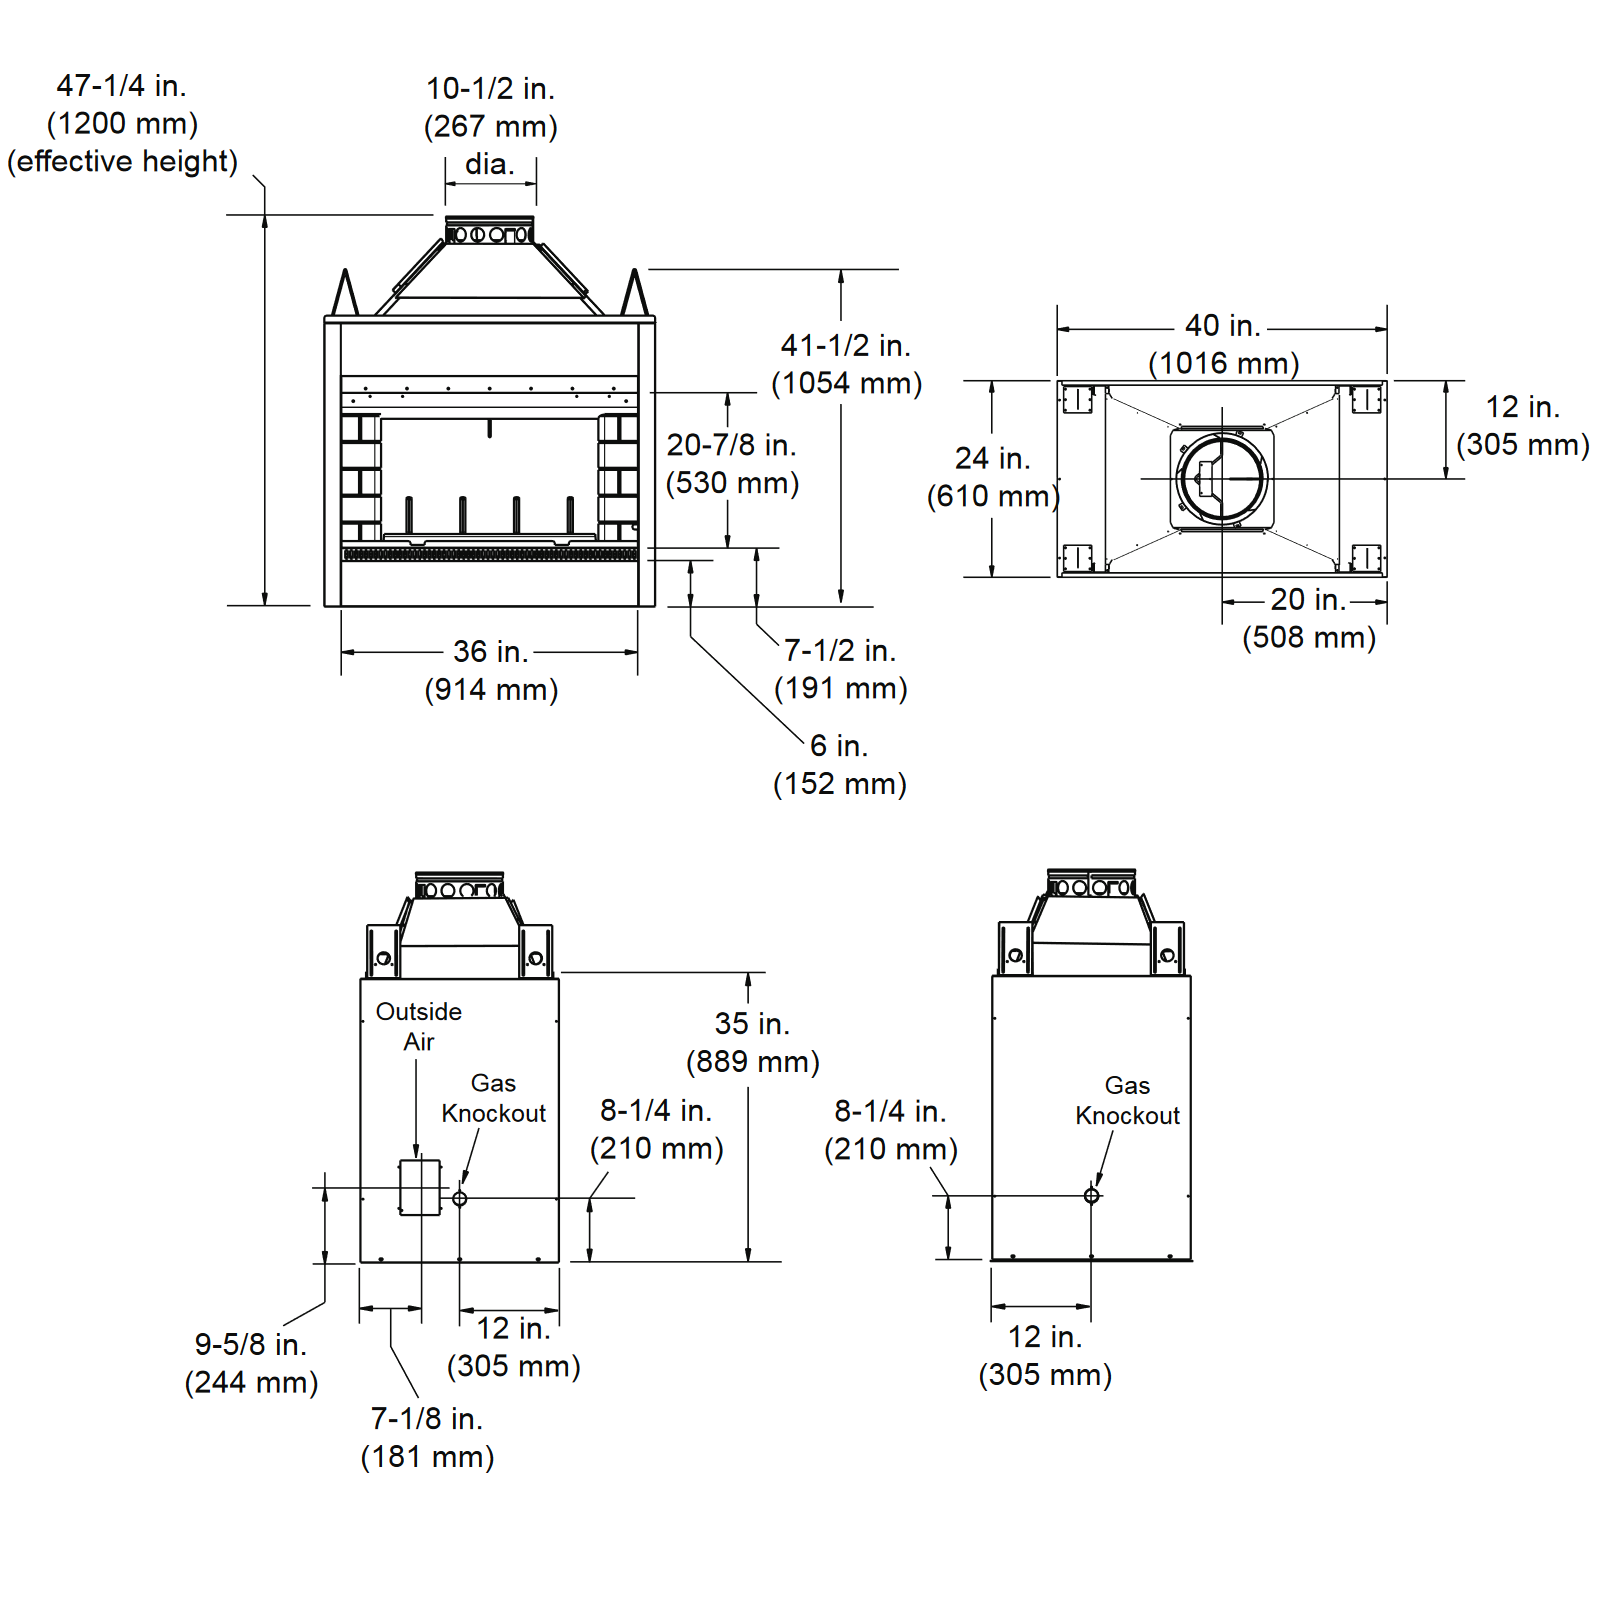 DSR36 Technical Drawing 1